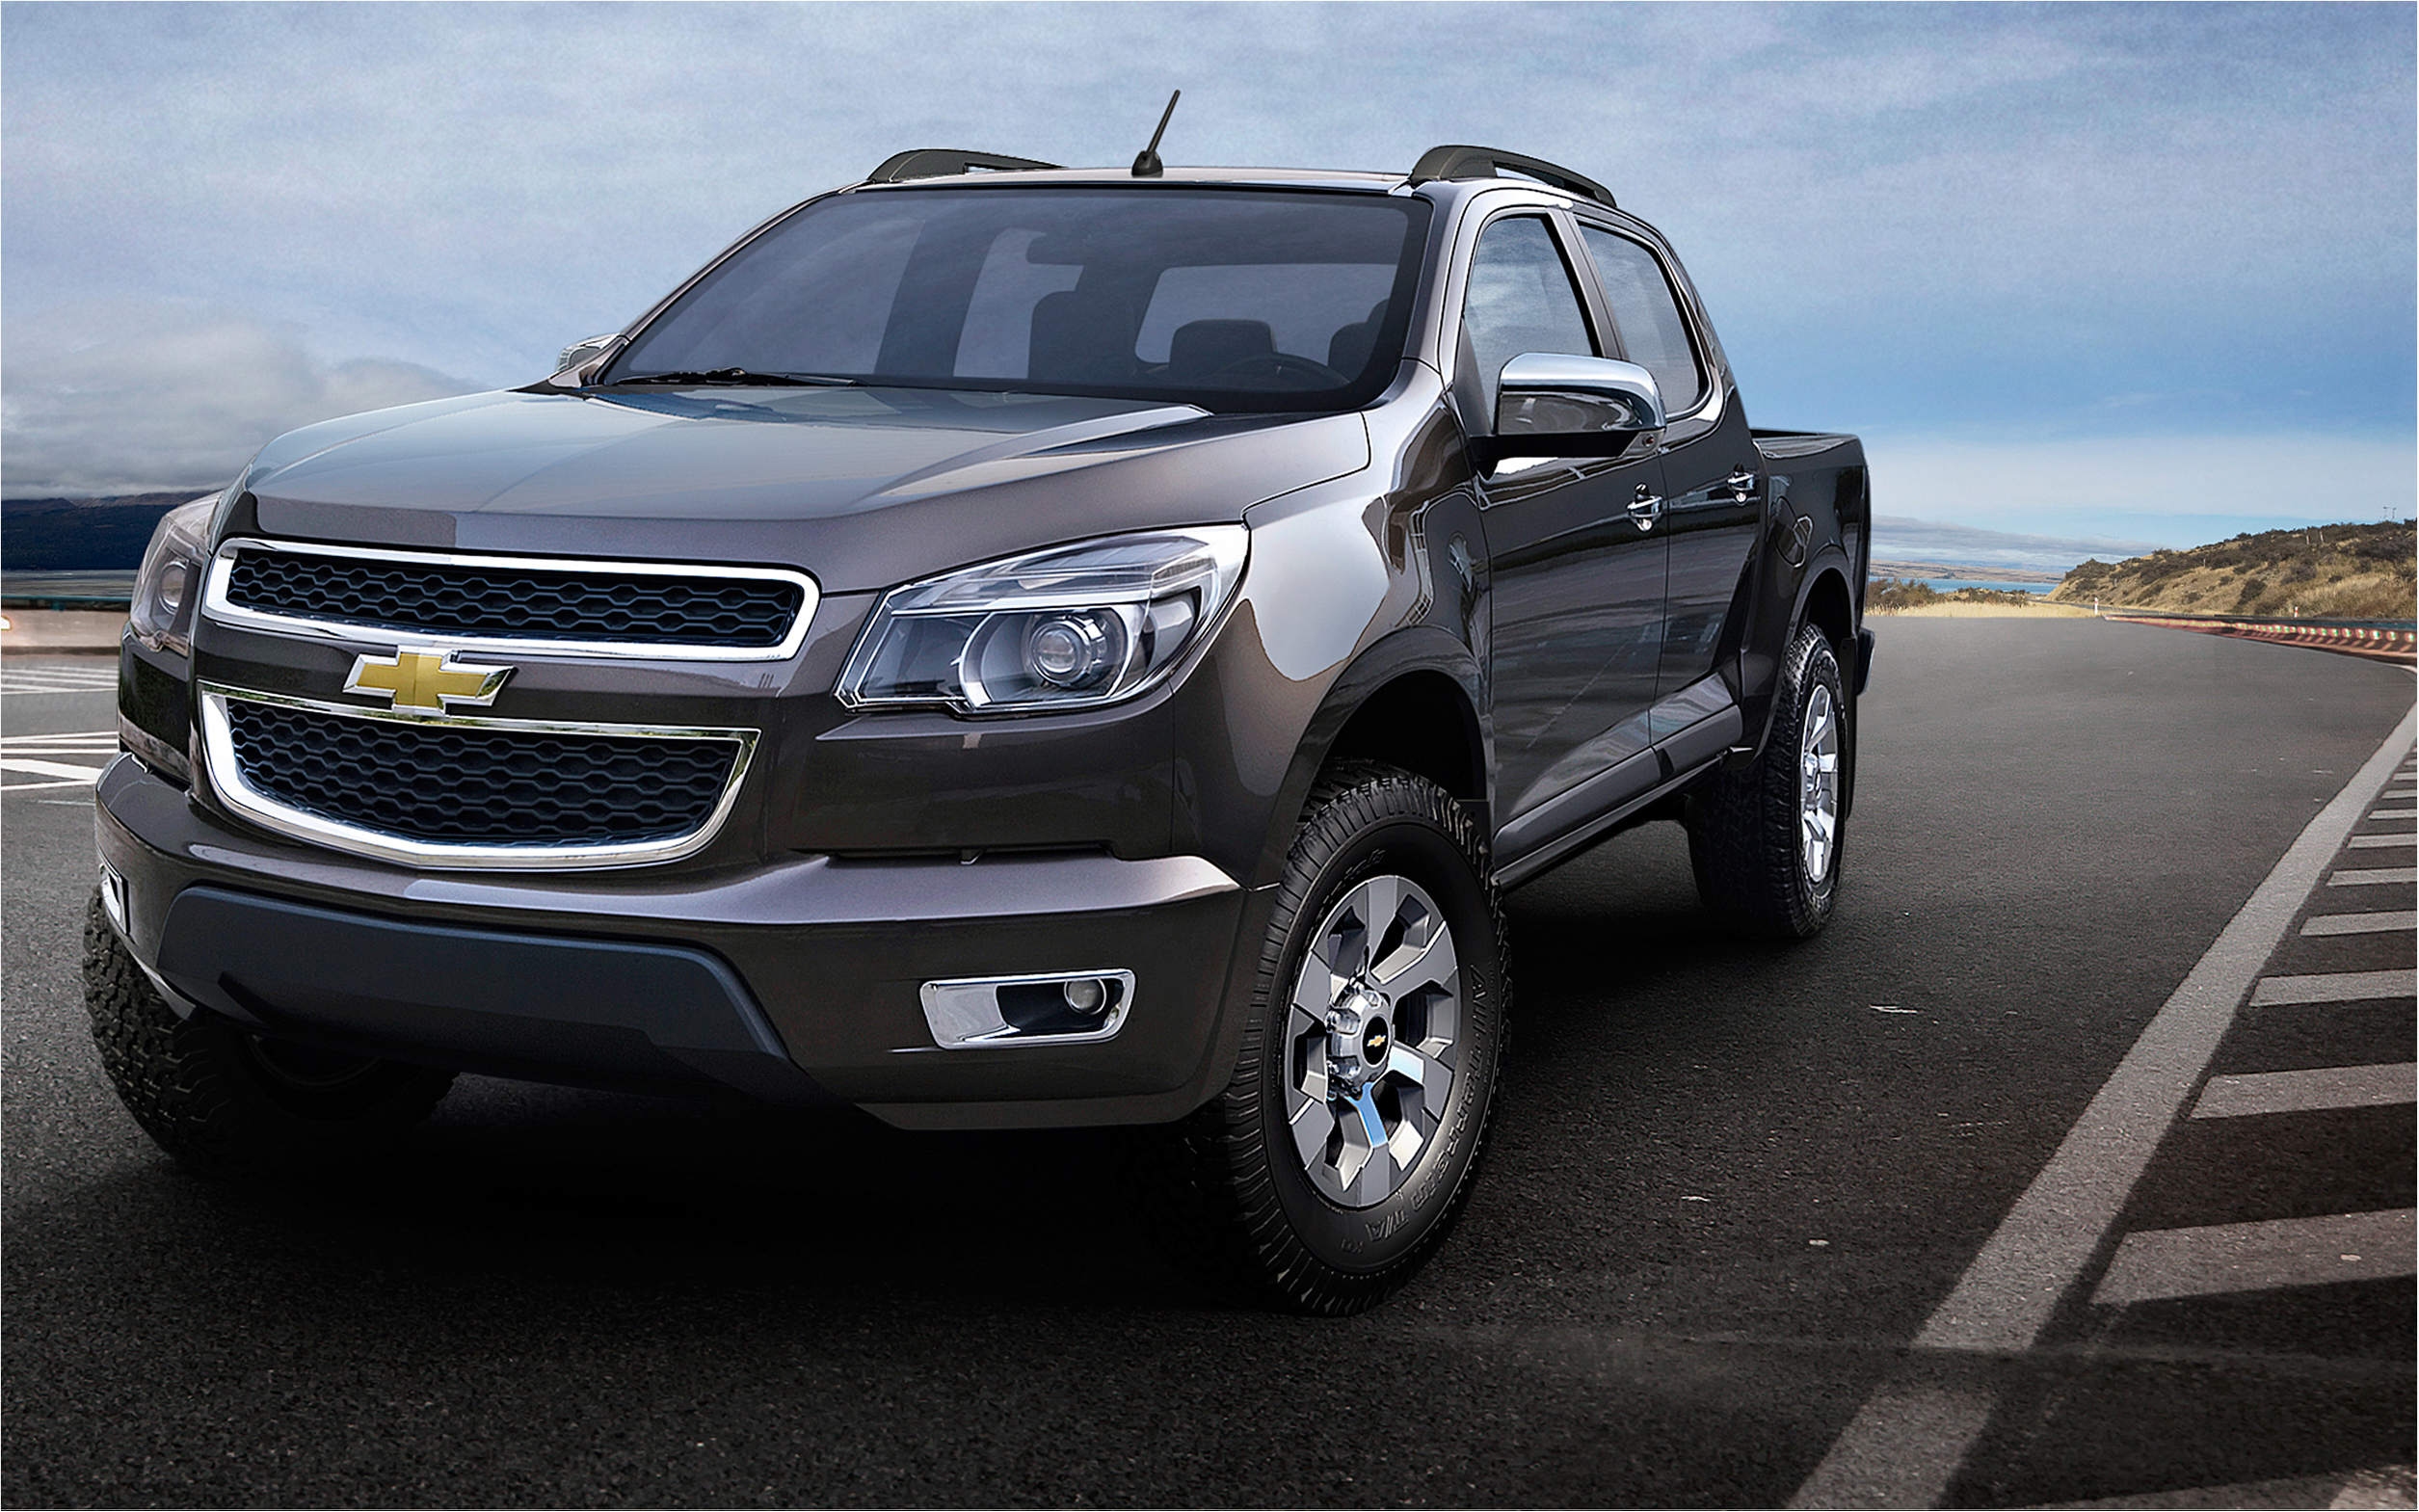 2012 Chevrolet Colorado #7